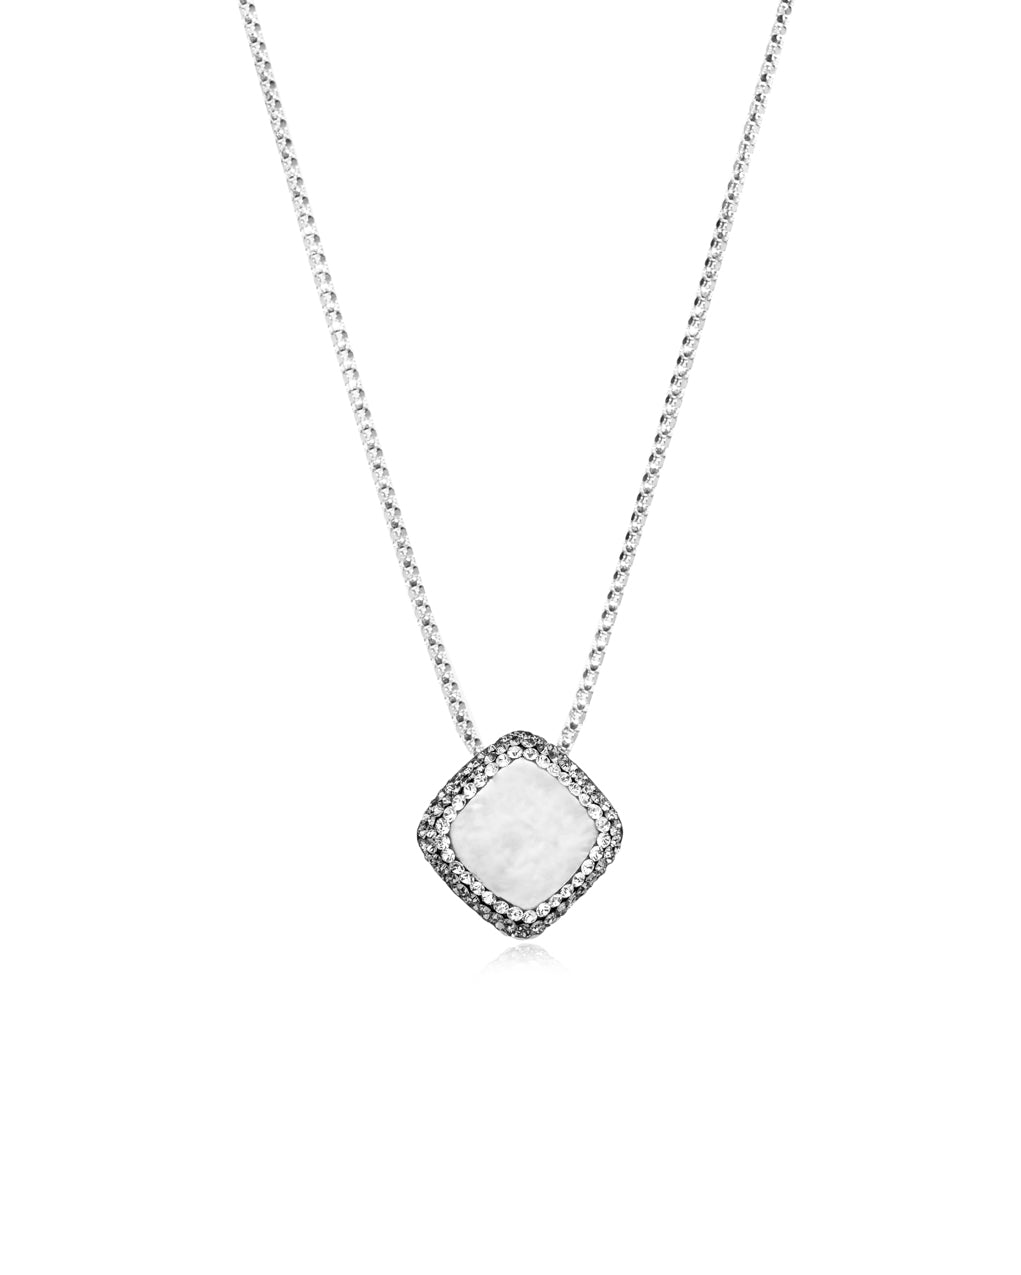 Dainty Diagonal Gem Necklace